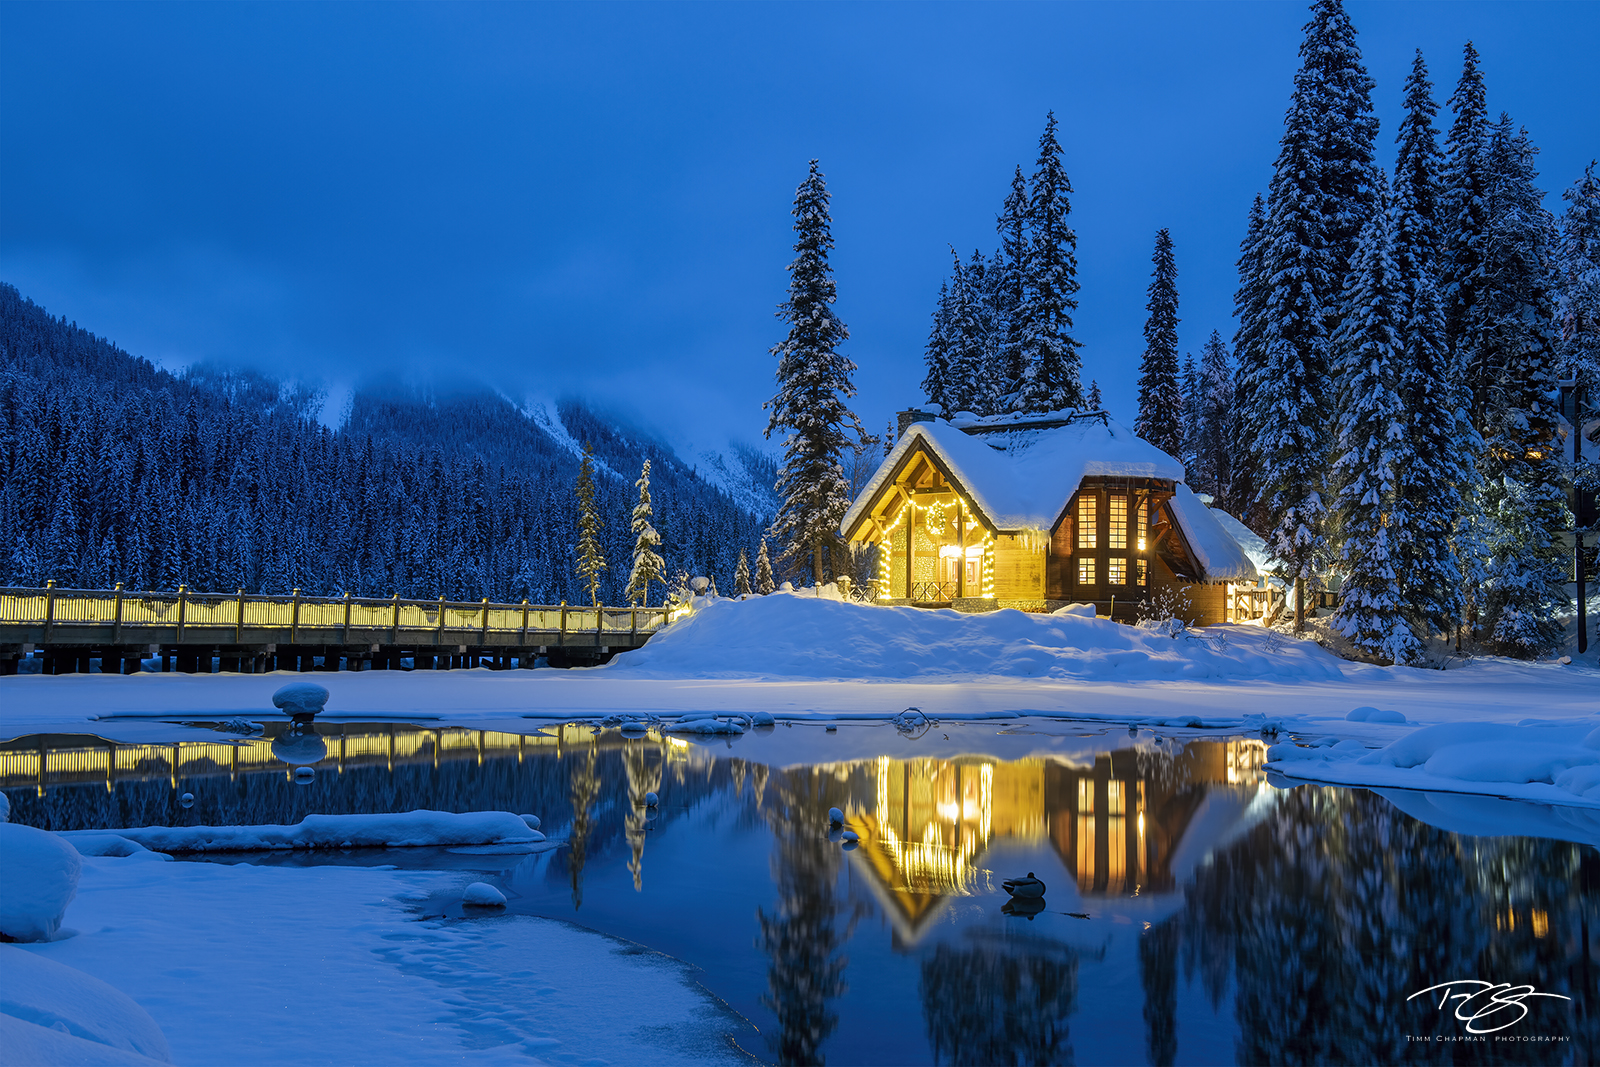 As a cold wintry night begins, a lodge in the mountains affords a warm respite.